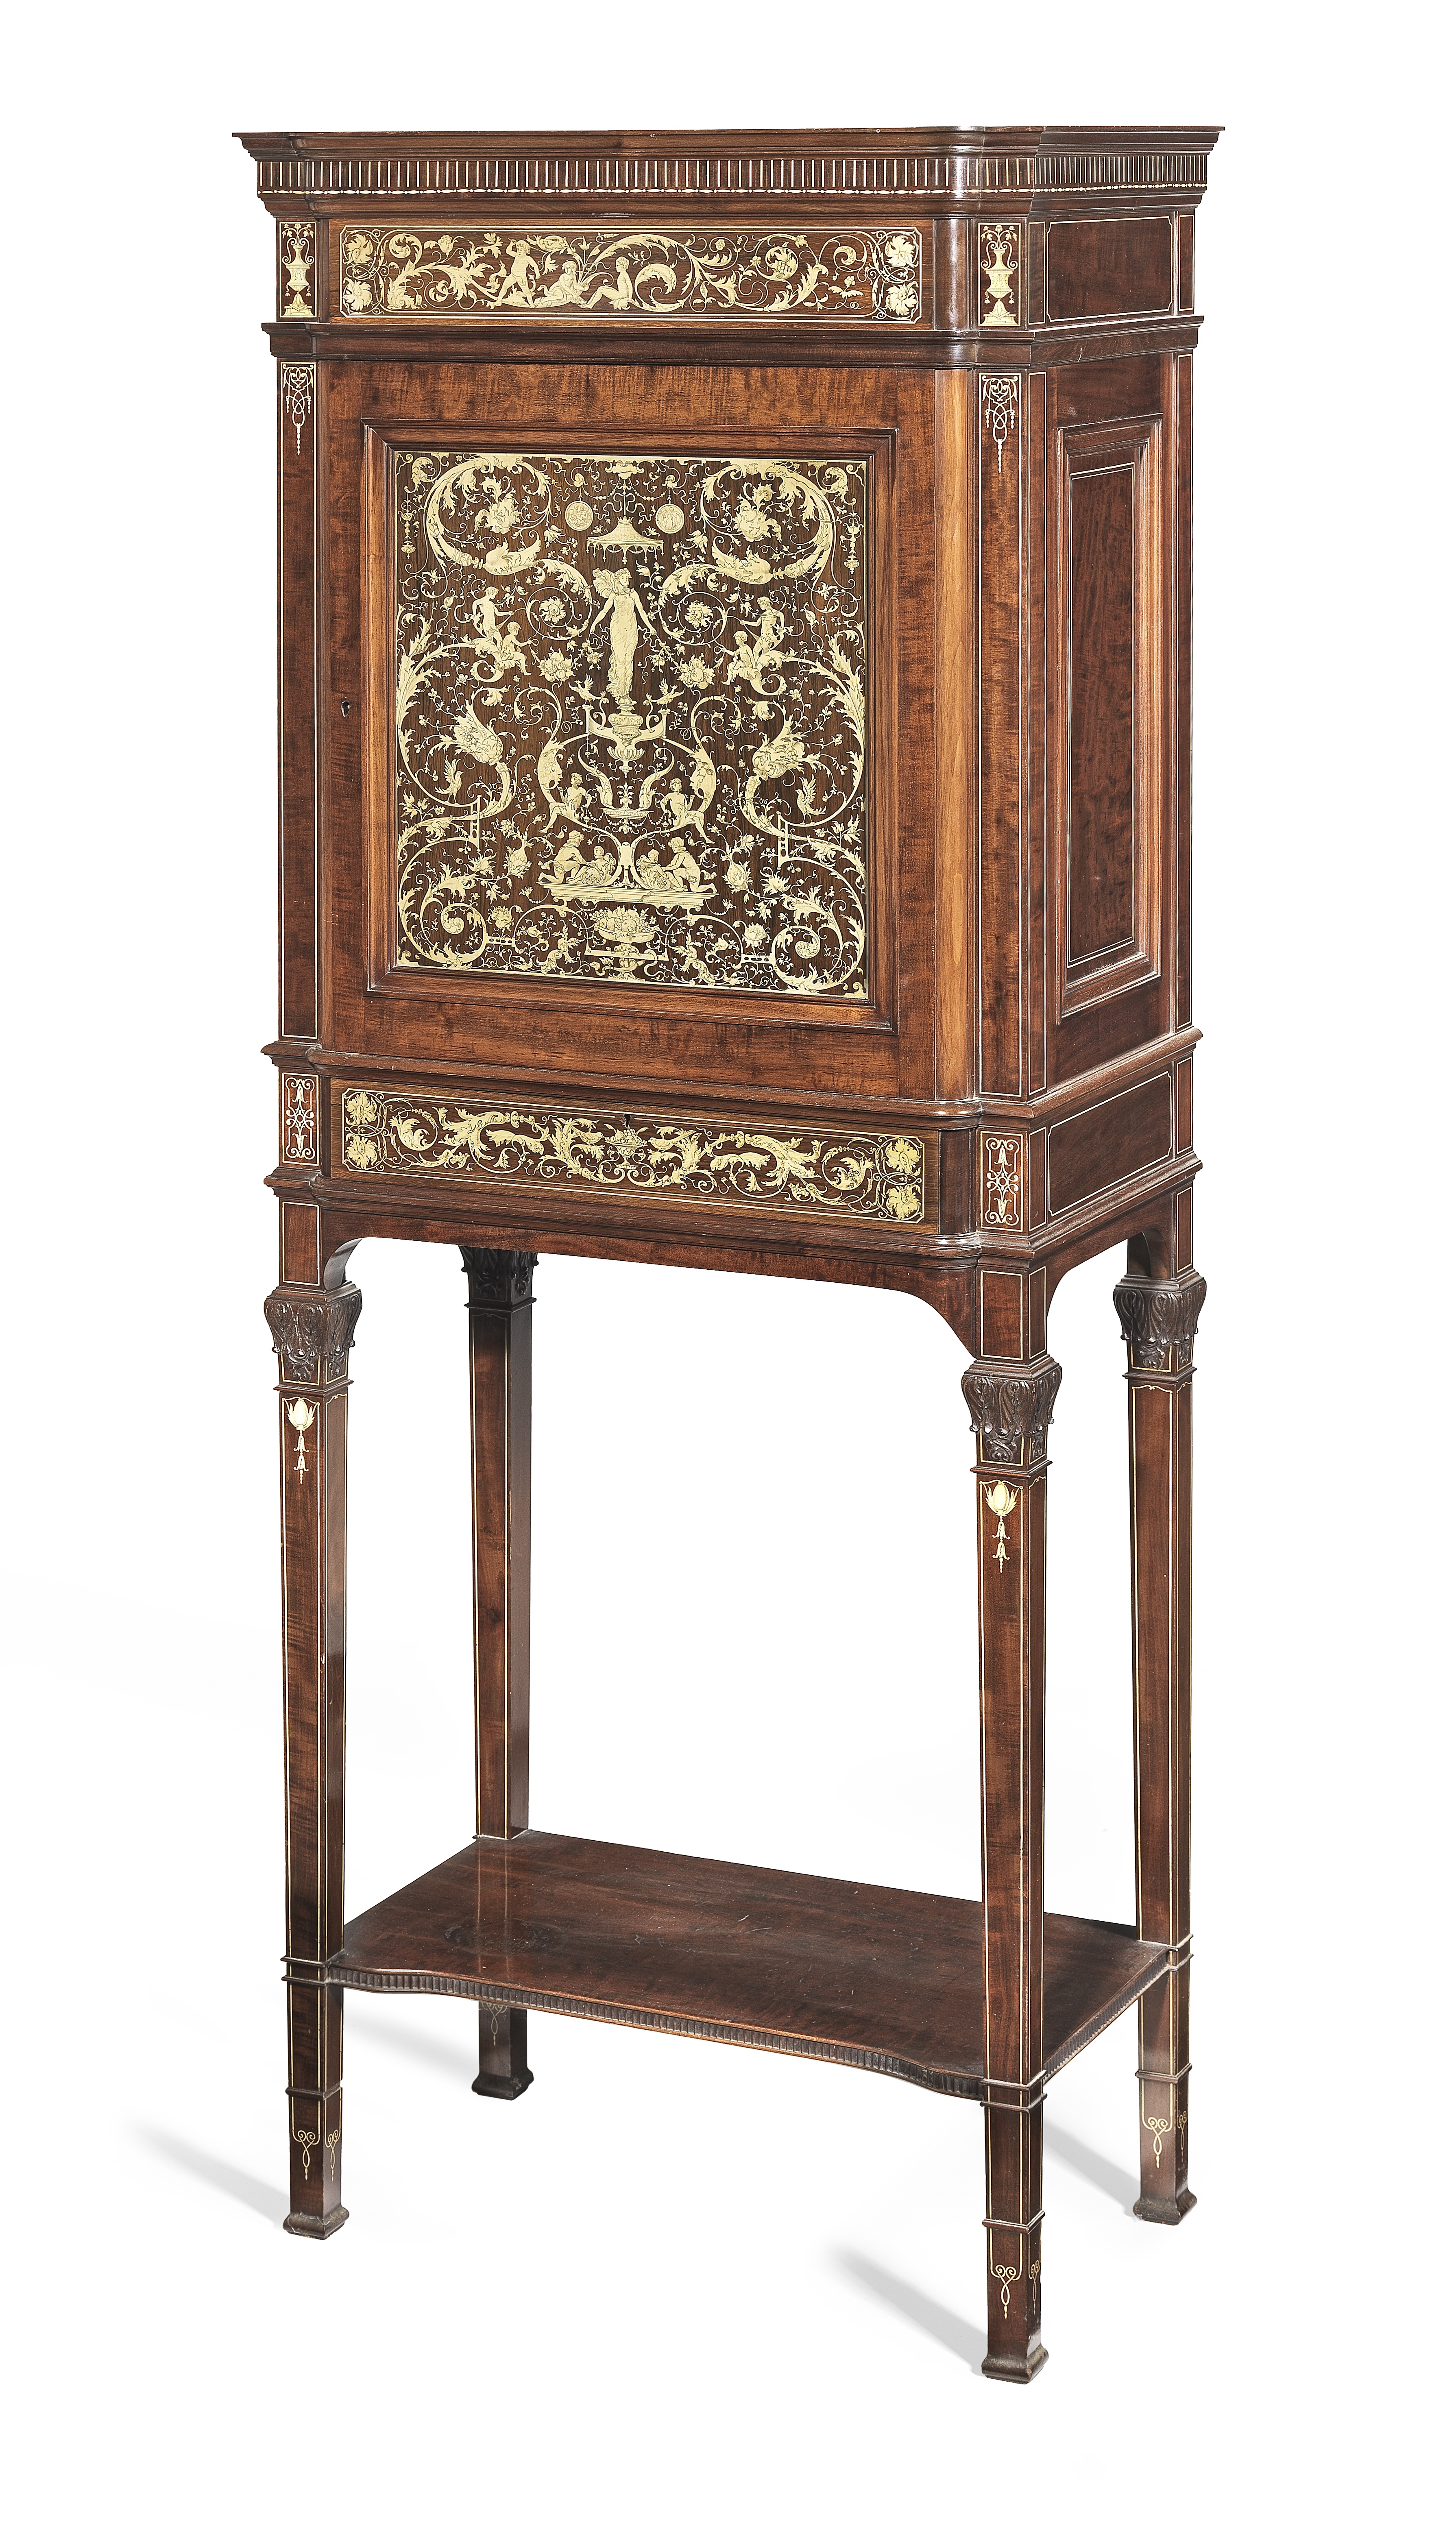 Lot 37 - A late Victorian mahogany, rosewood and ivory marquetry cabinet on stand attributed to Collinson ...